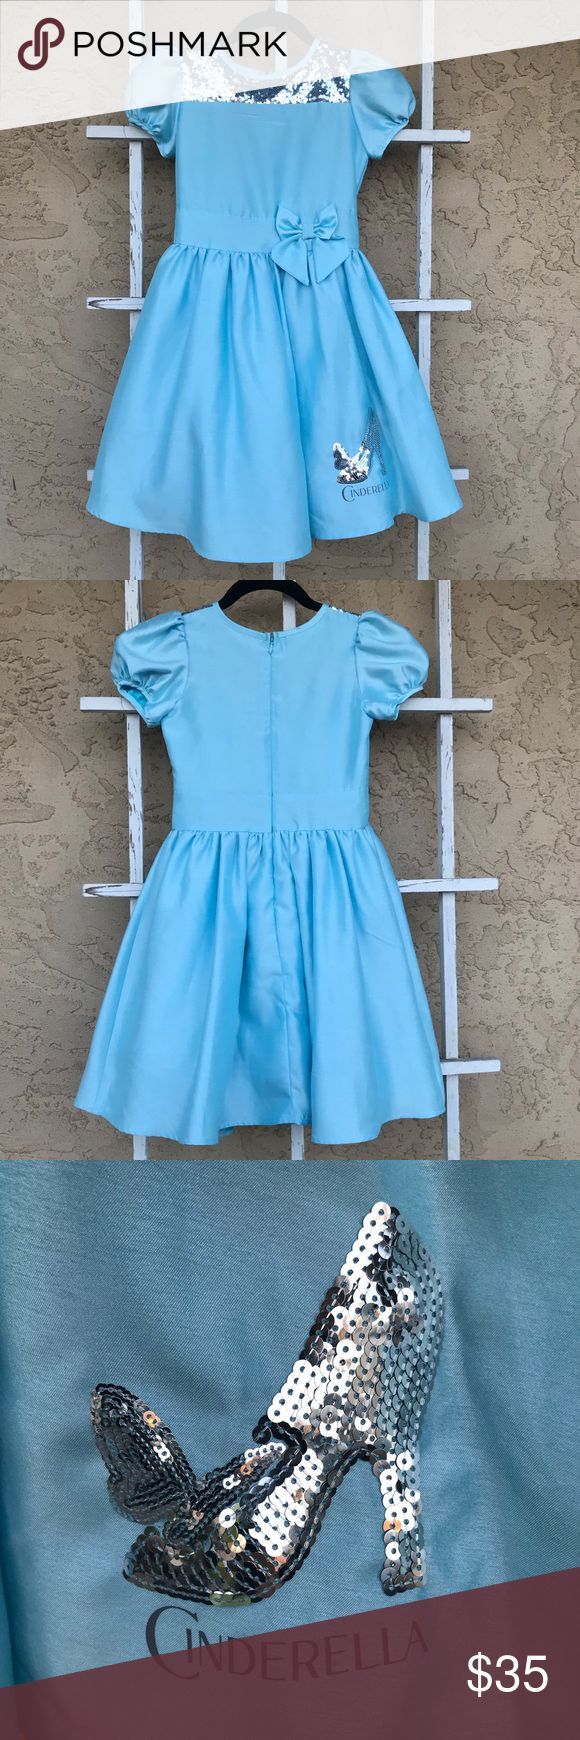 Disney Cinderella Princess Blue Dress Girl's Disney Cinderella Dress for new movie release.    Size S Disney Dresses Casual